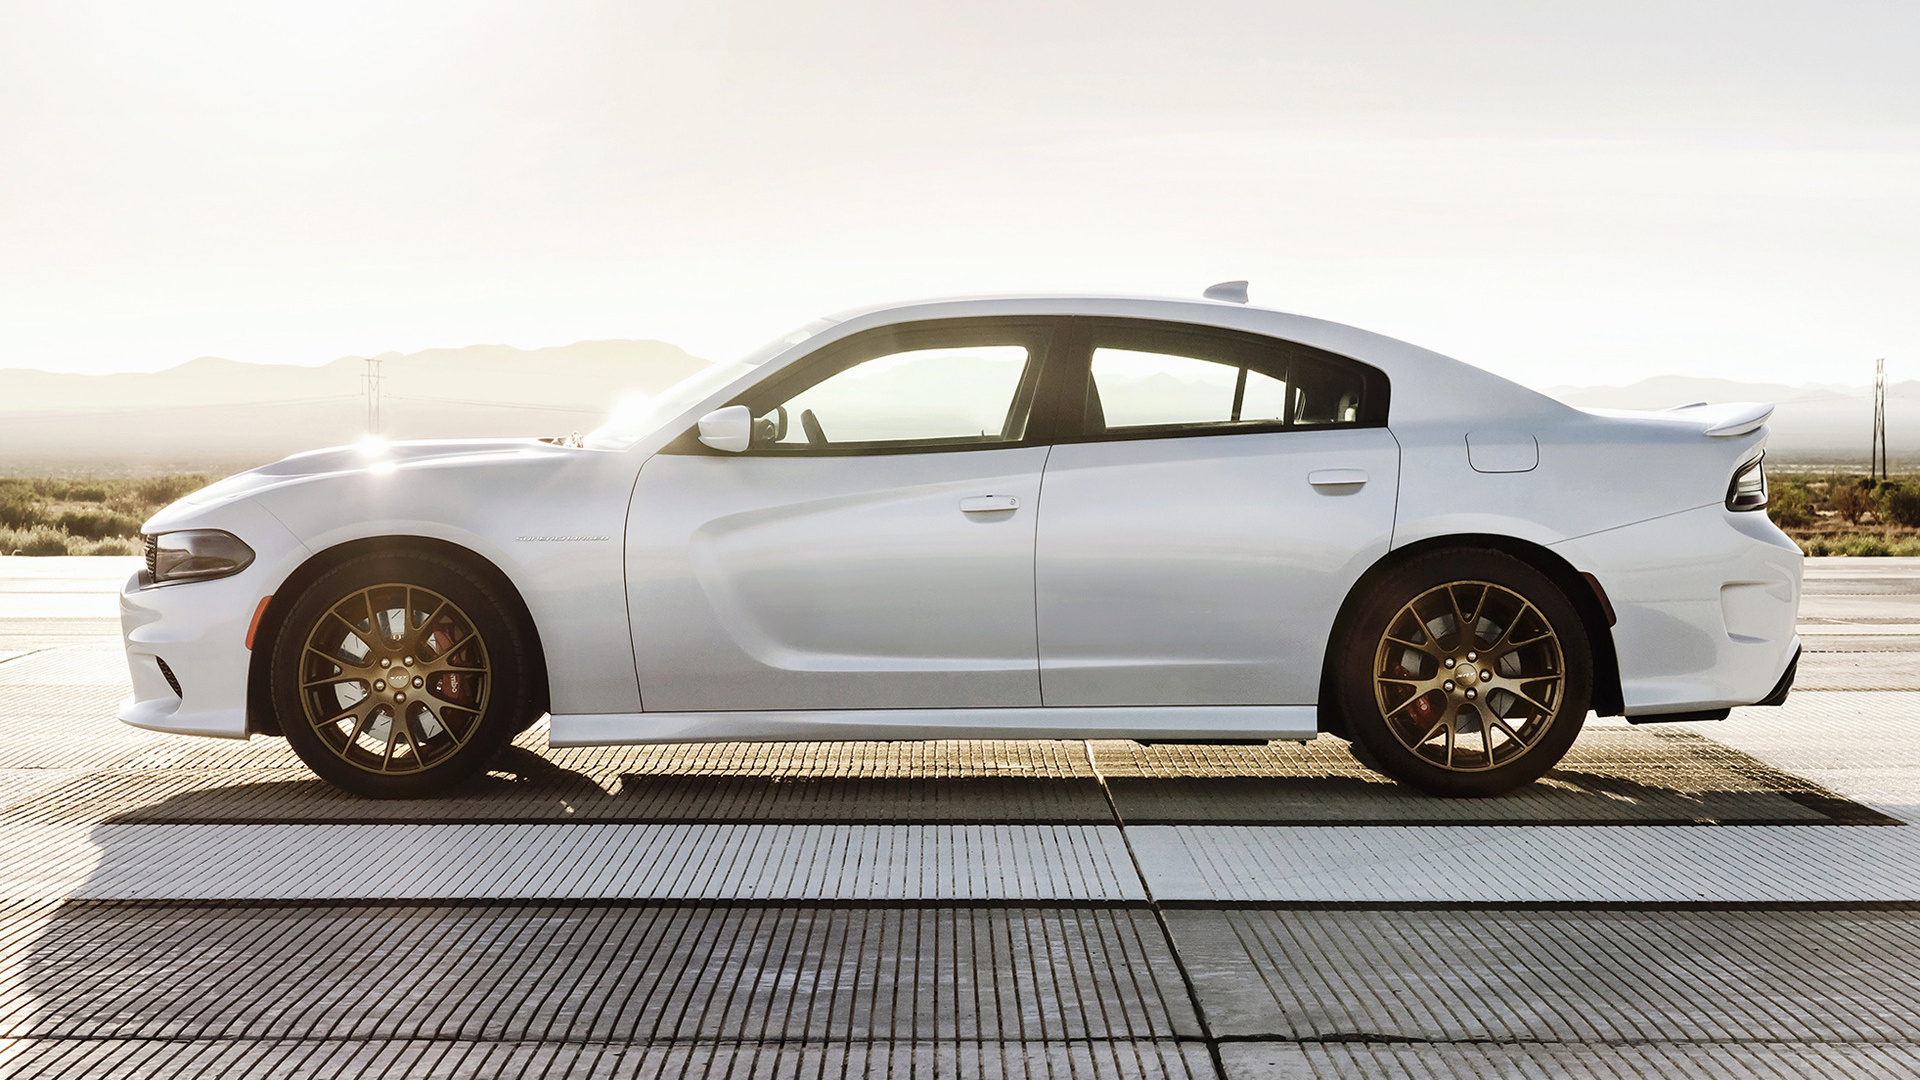 Dodge Charger SRT Hellcat (2015) Wallpapers and HD Images - Car Pixel